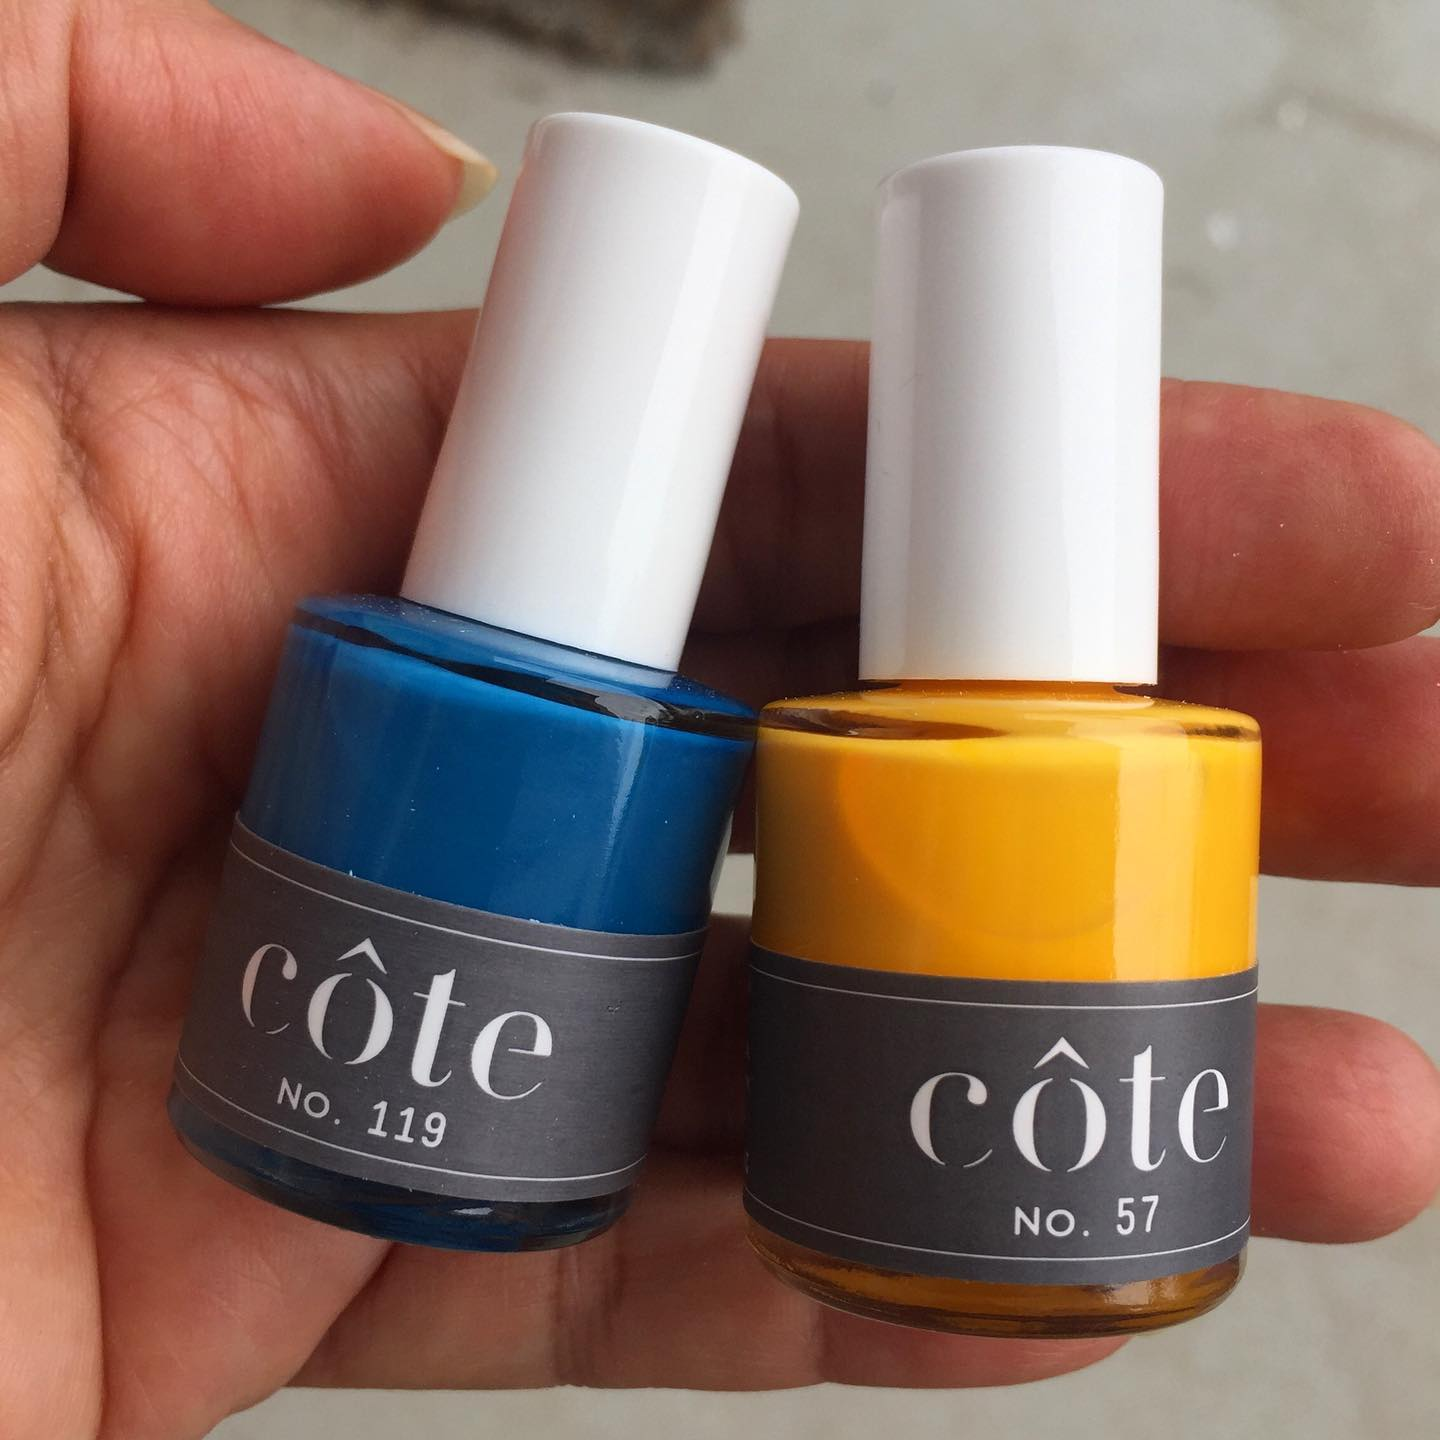 I know it's fall, but these two are calling my name. Now, which one should I use?!?! #ichoosebeauty Day 2532